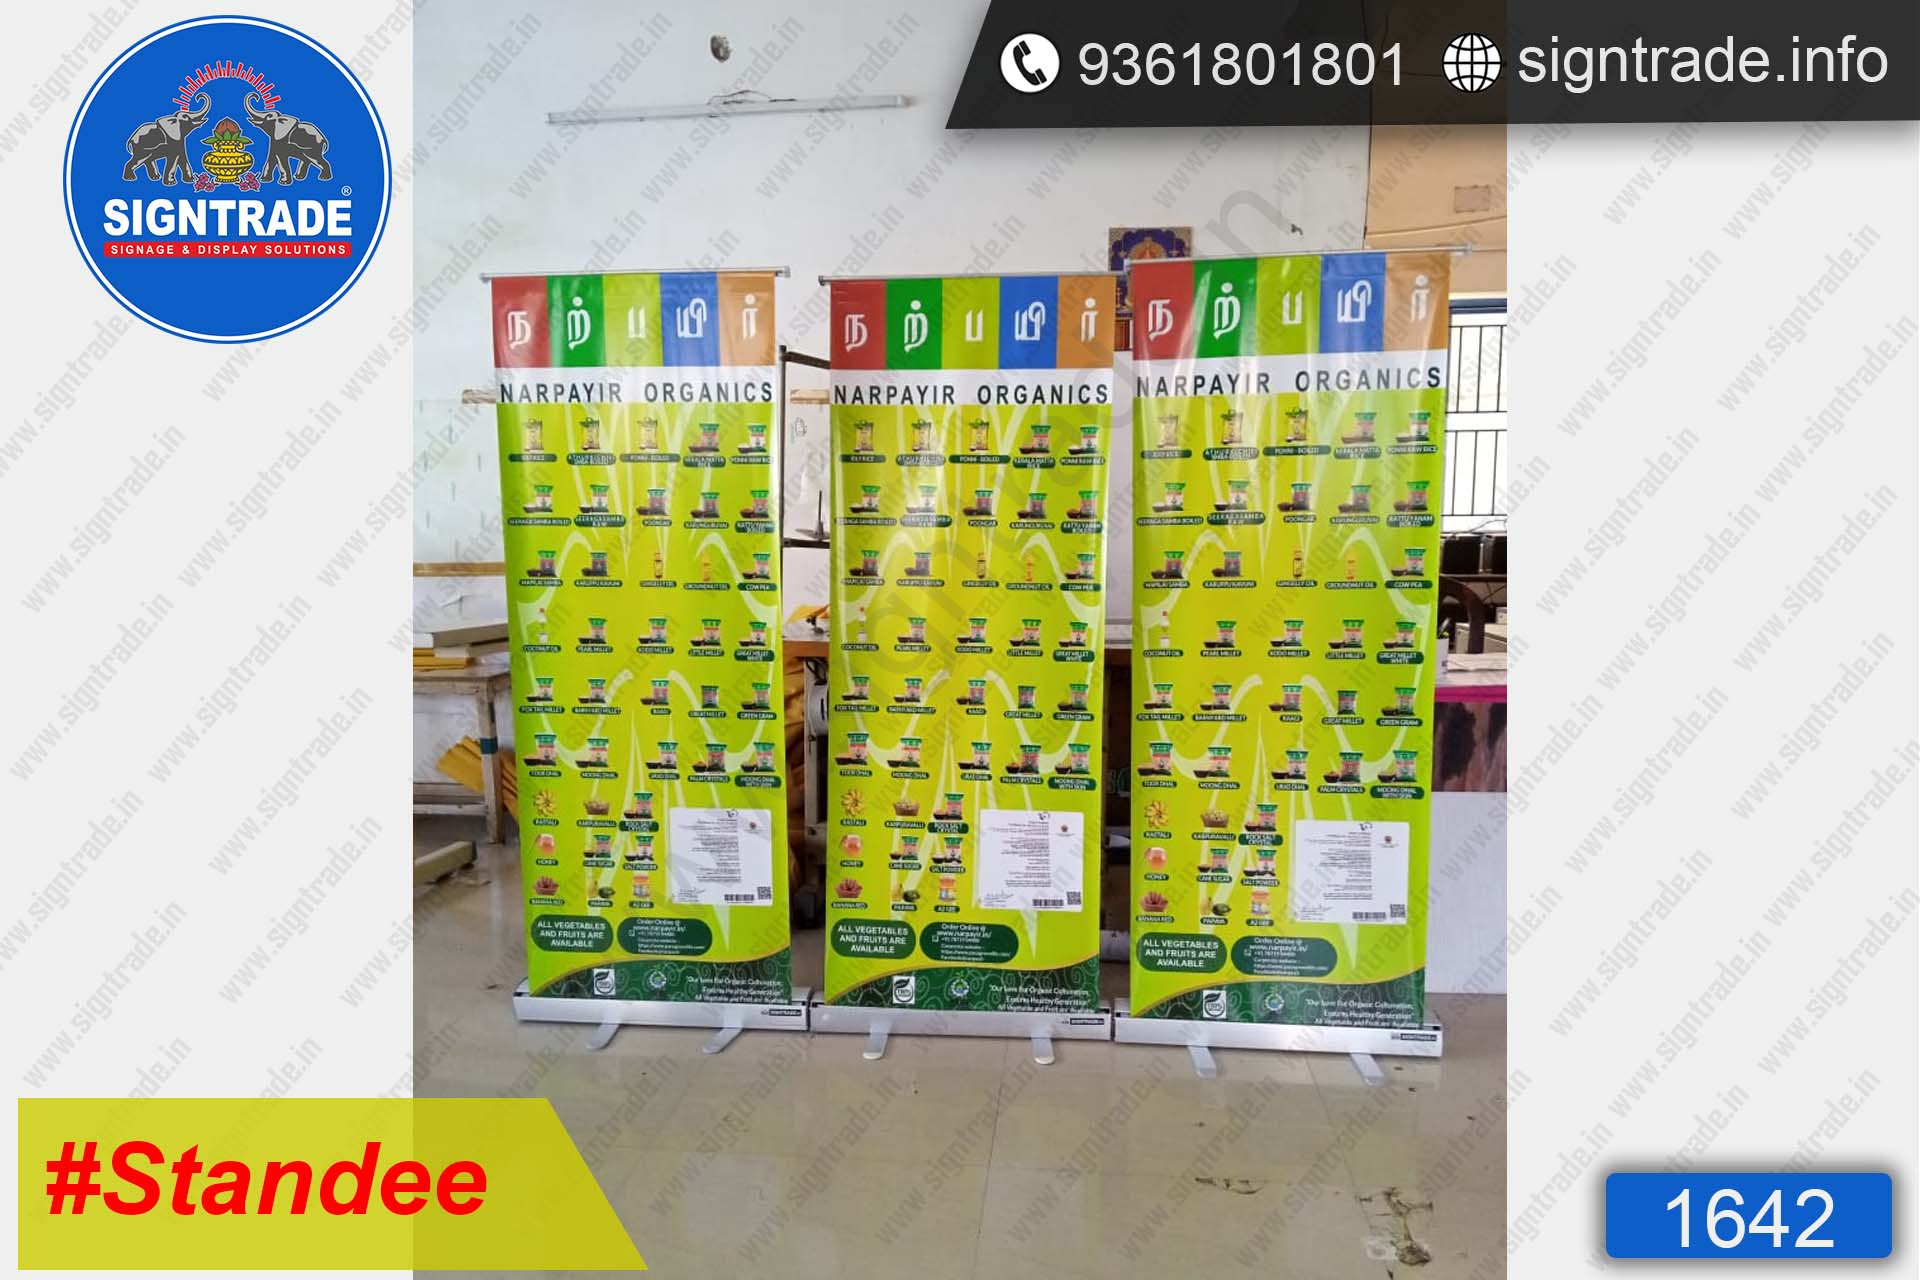 Narpayir Organics - Rollup Banner Stand - SIGNTRADE - Rollup Banner Stand Manufactures in Chennai